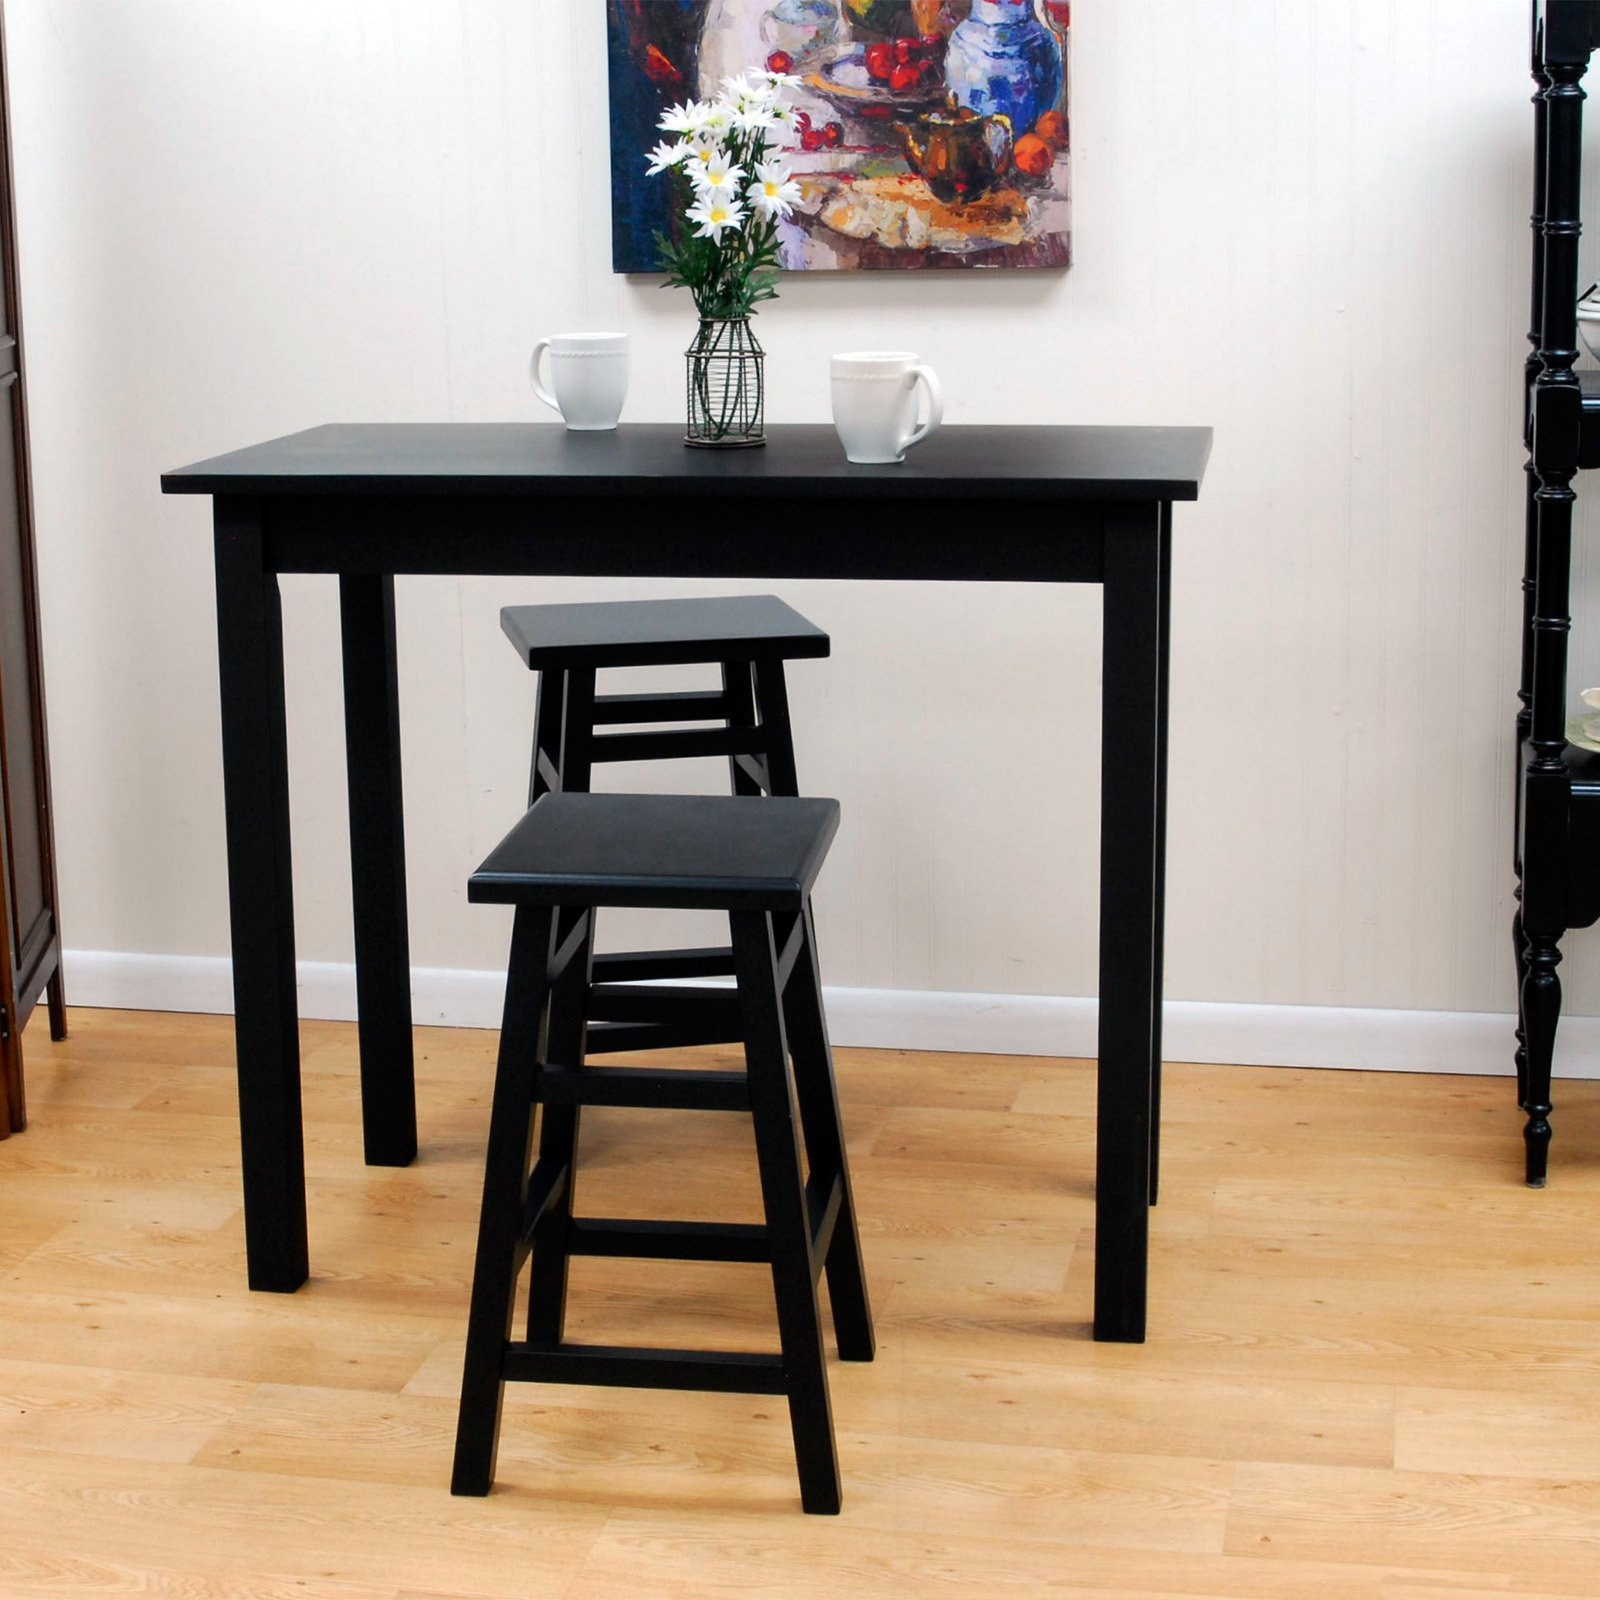 Carolina Tavern 3 Piece Black Pub Table Set - with Tavern Black Backless Stools - Walmart.com & Carolina Tavern 3 Piece Black Pub Table Set - with Tavern Black ...